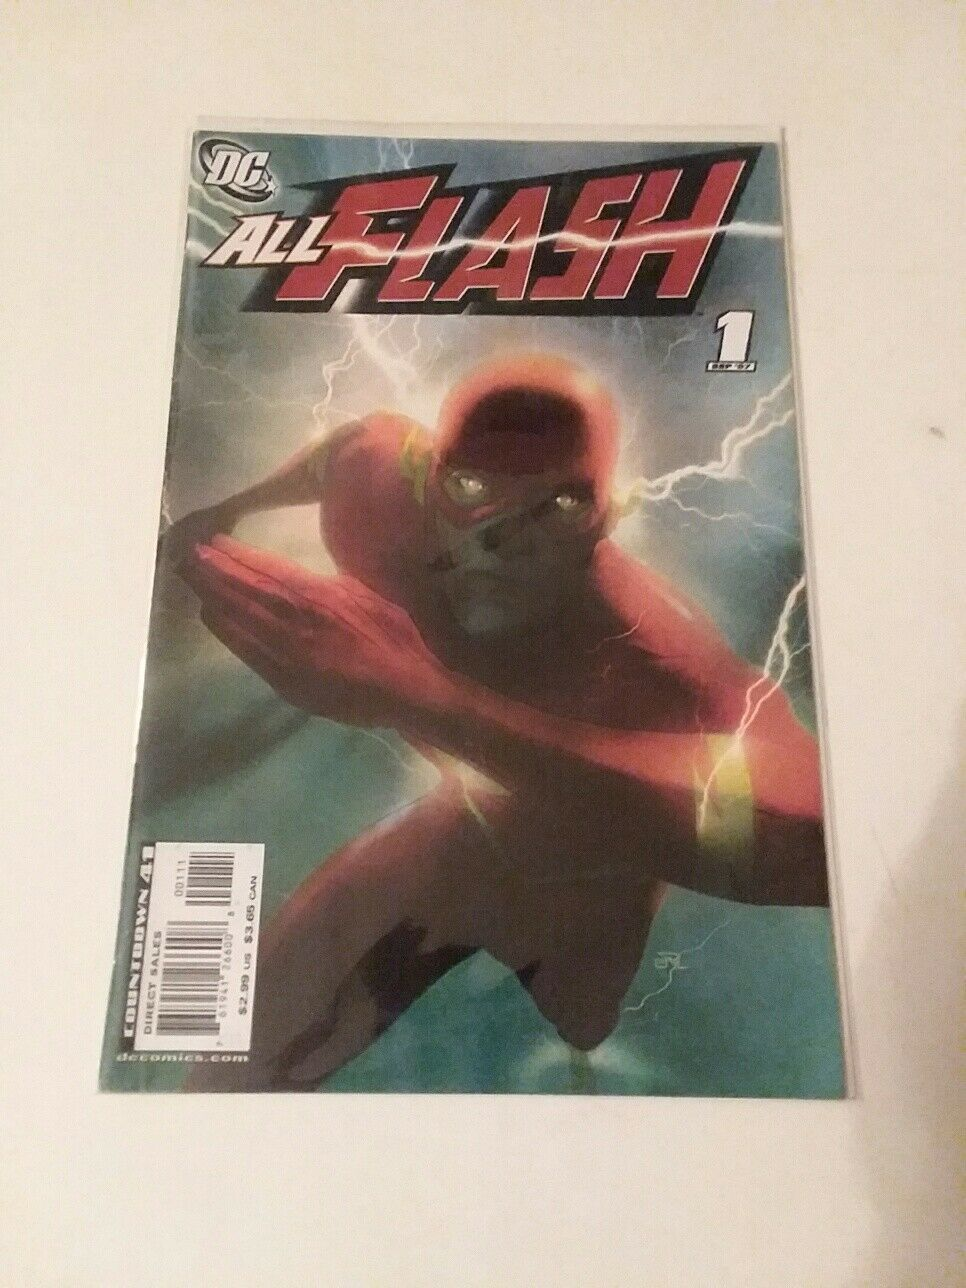 VIBE #1 AND #5 - NEW 52  FIRST RUN + ALL FLASH #1 - FREE SHIPPING